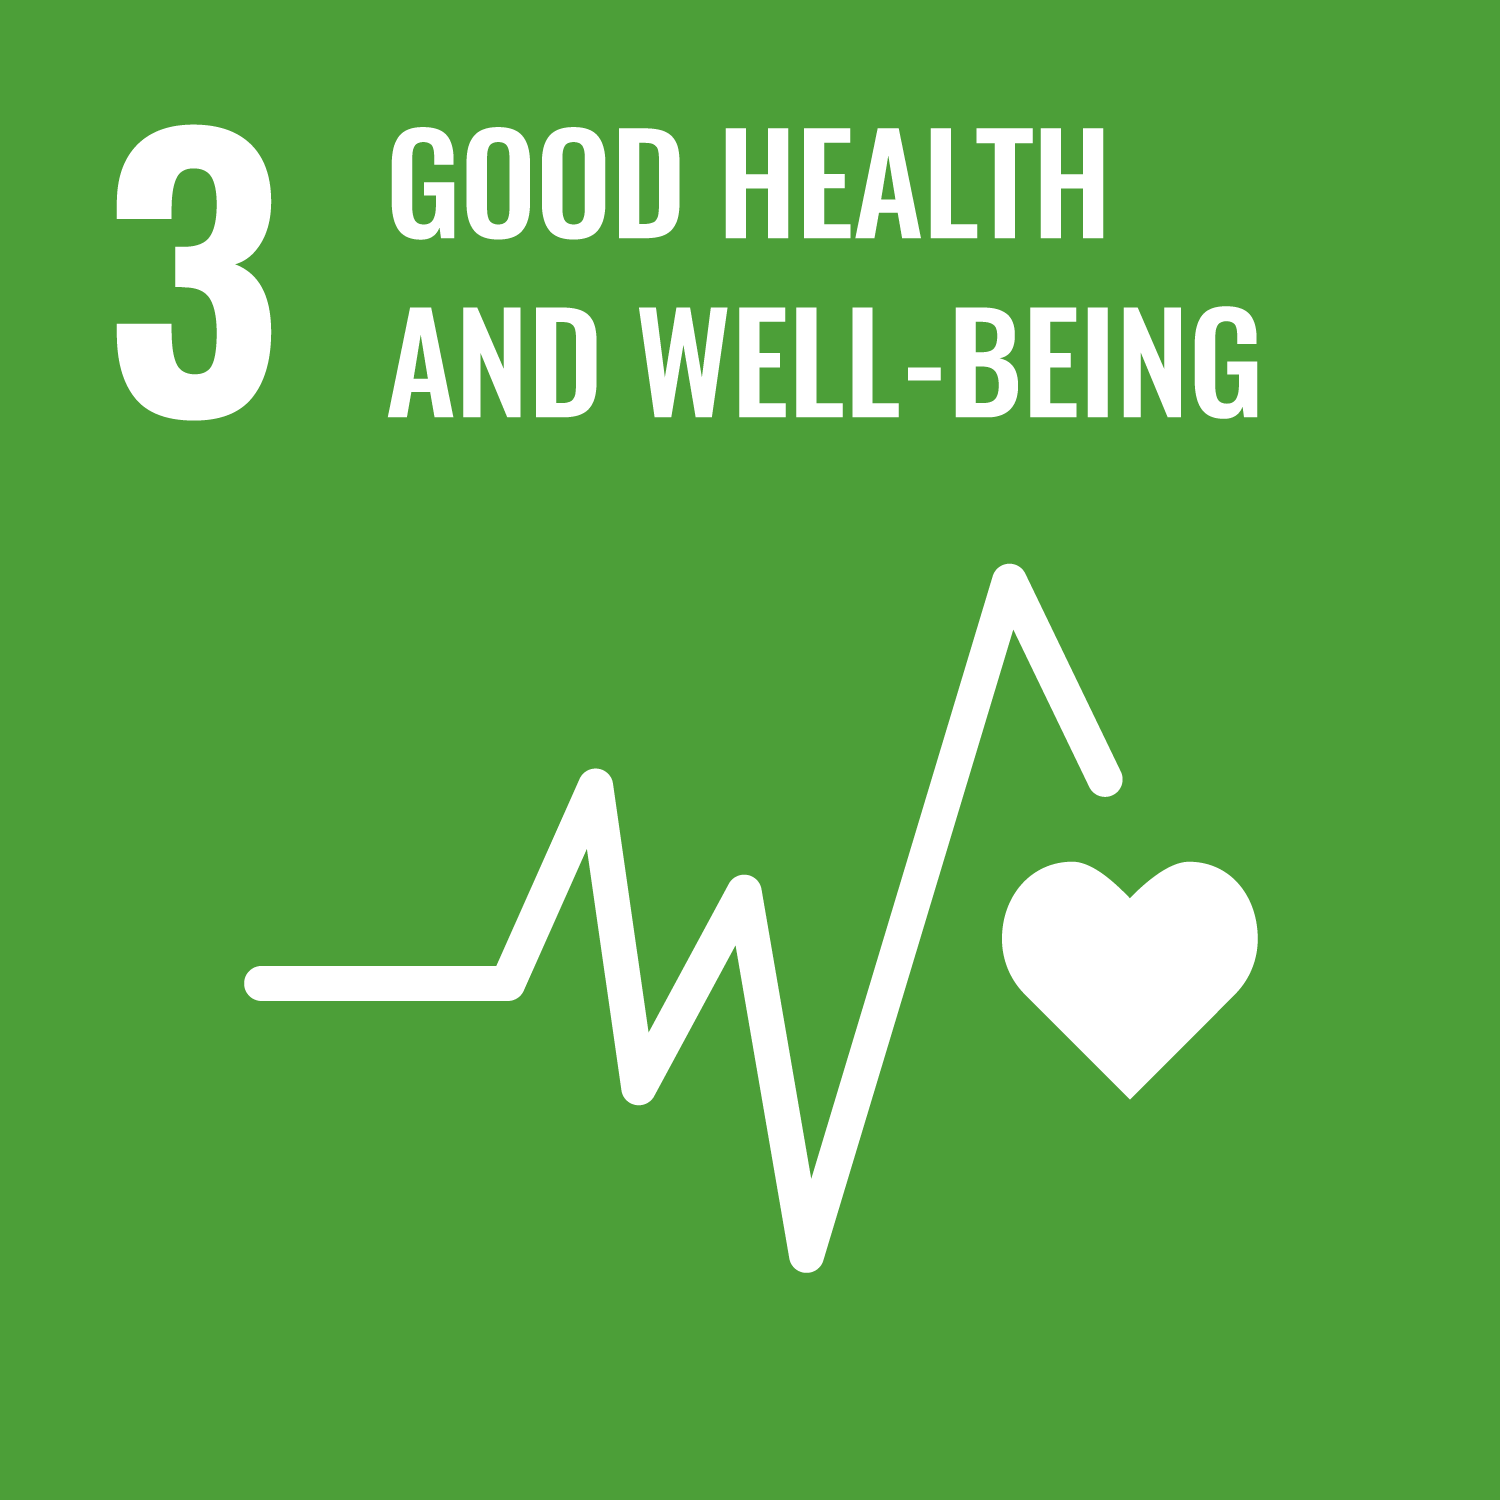 Goal 03 Good Health and Well-Being